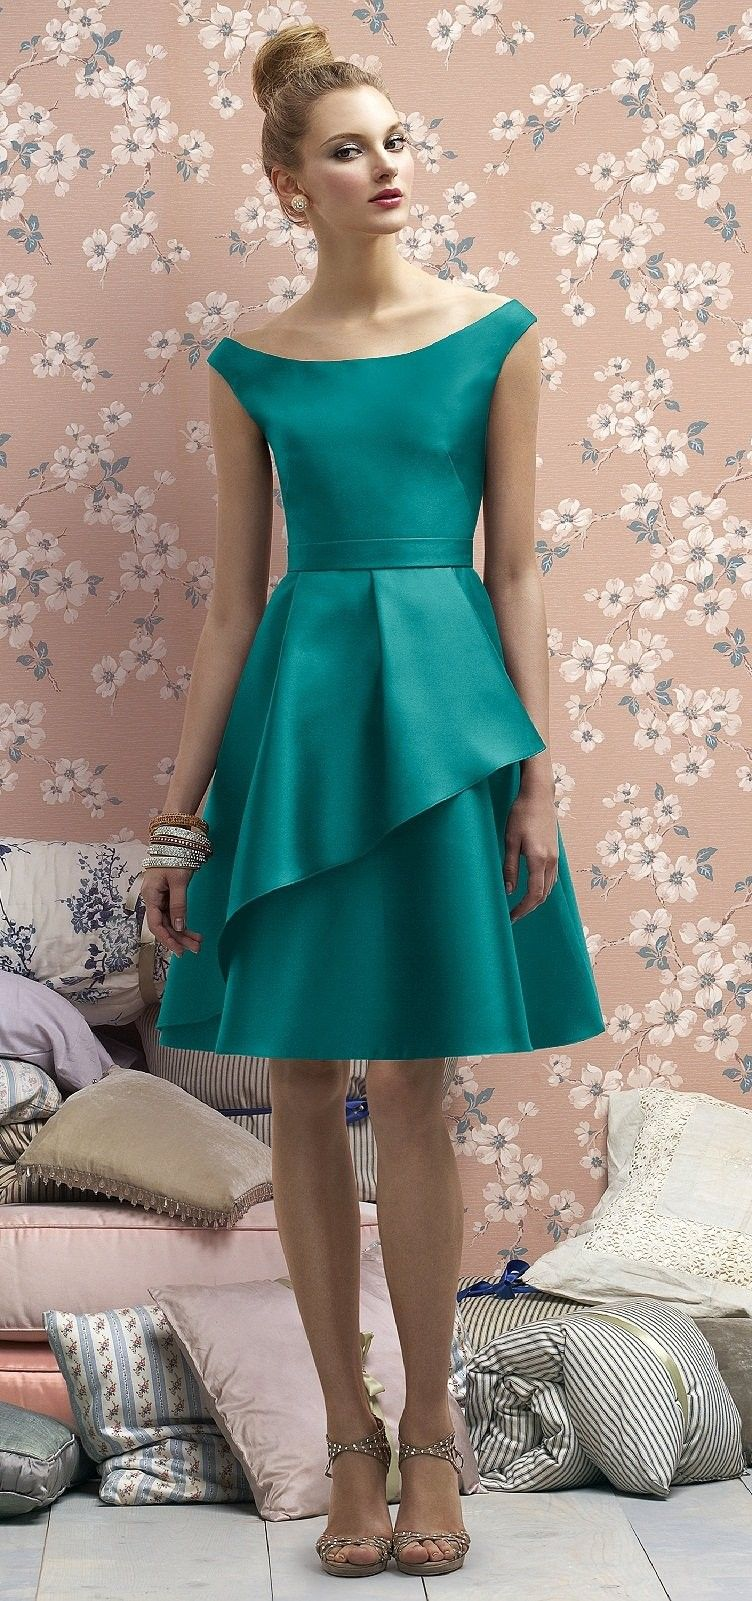 Style lr bridesmaid dresses weddington way wedding